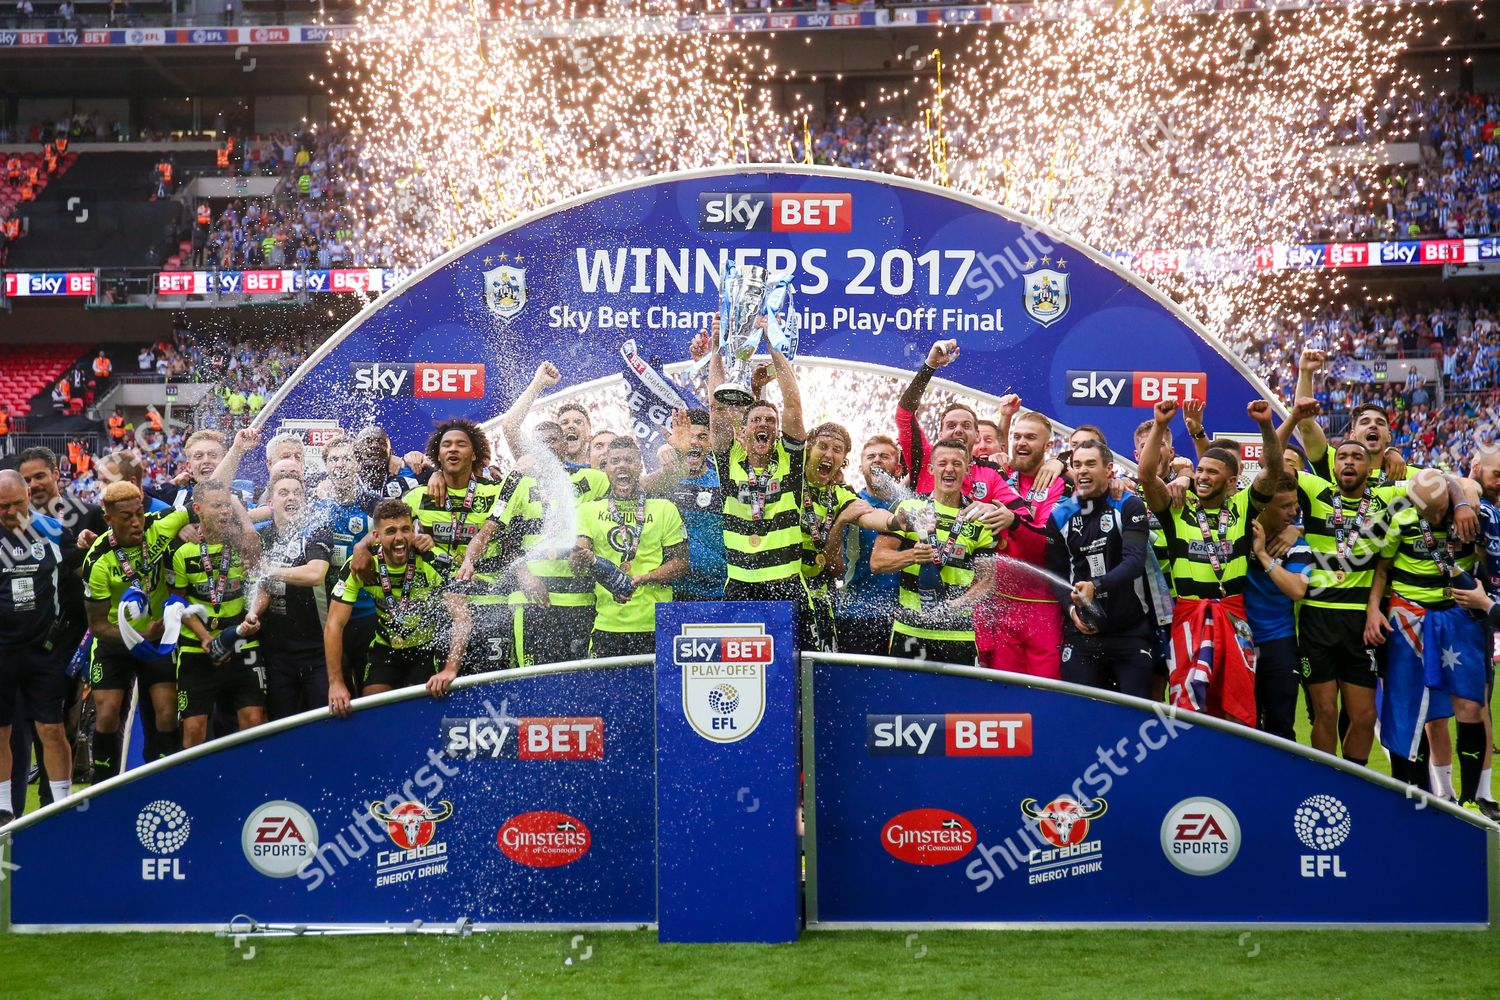 Huddersfield Town players lift trophy after winning